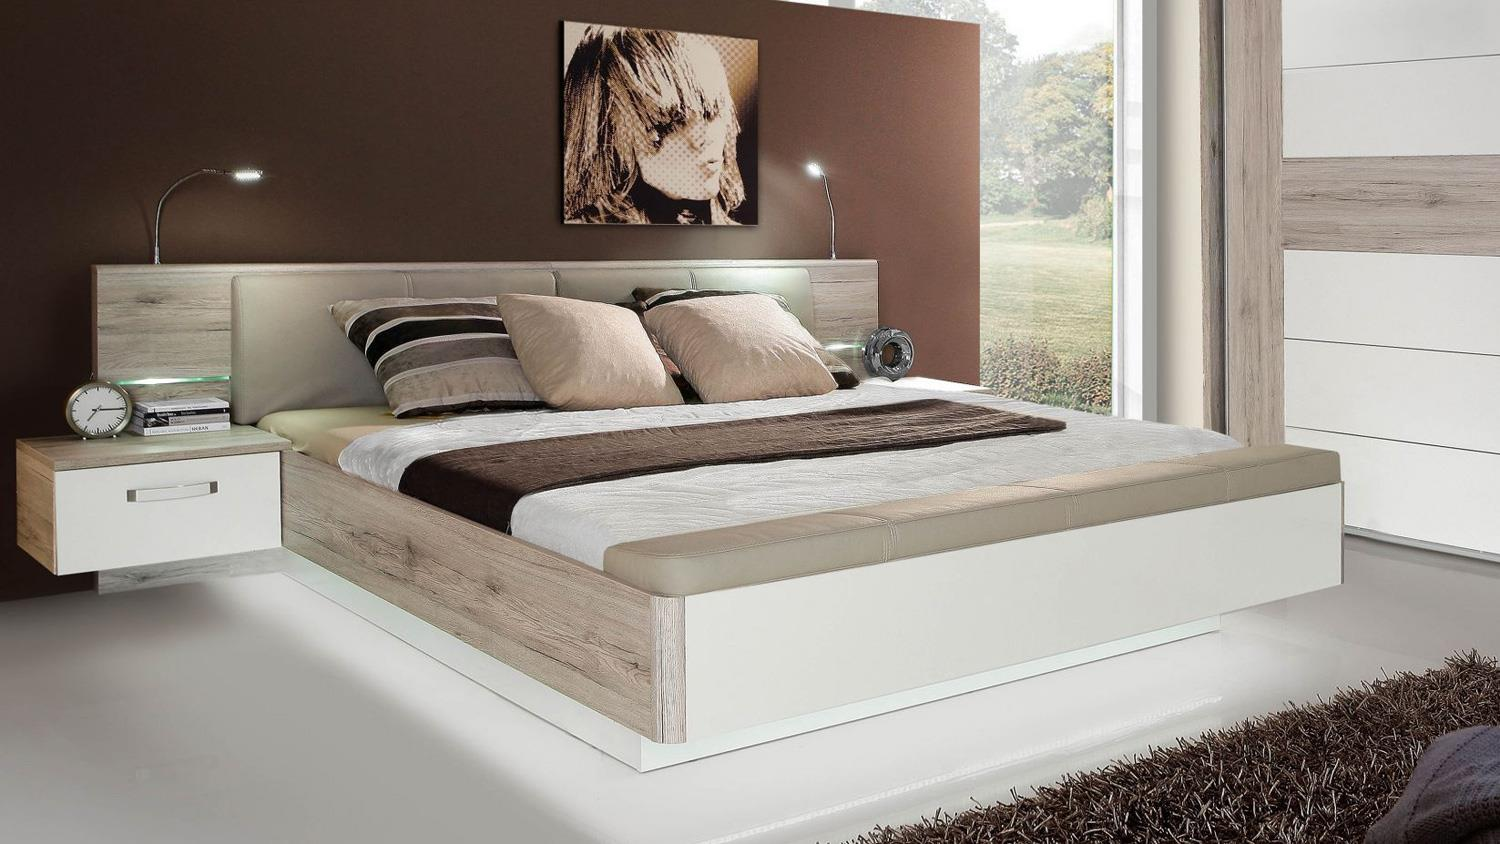 schlafzimmer 3 rondino komplettset in sandeiche wei hochglanz mit led. Black Bedroom Furniture Sets. Home Design Ideas